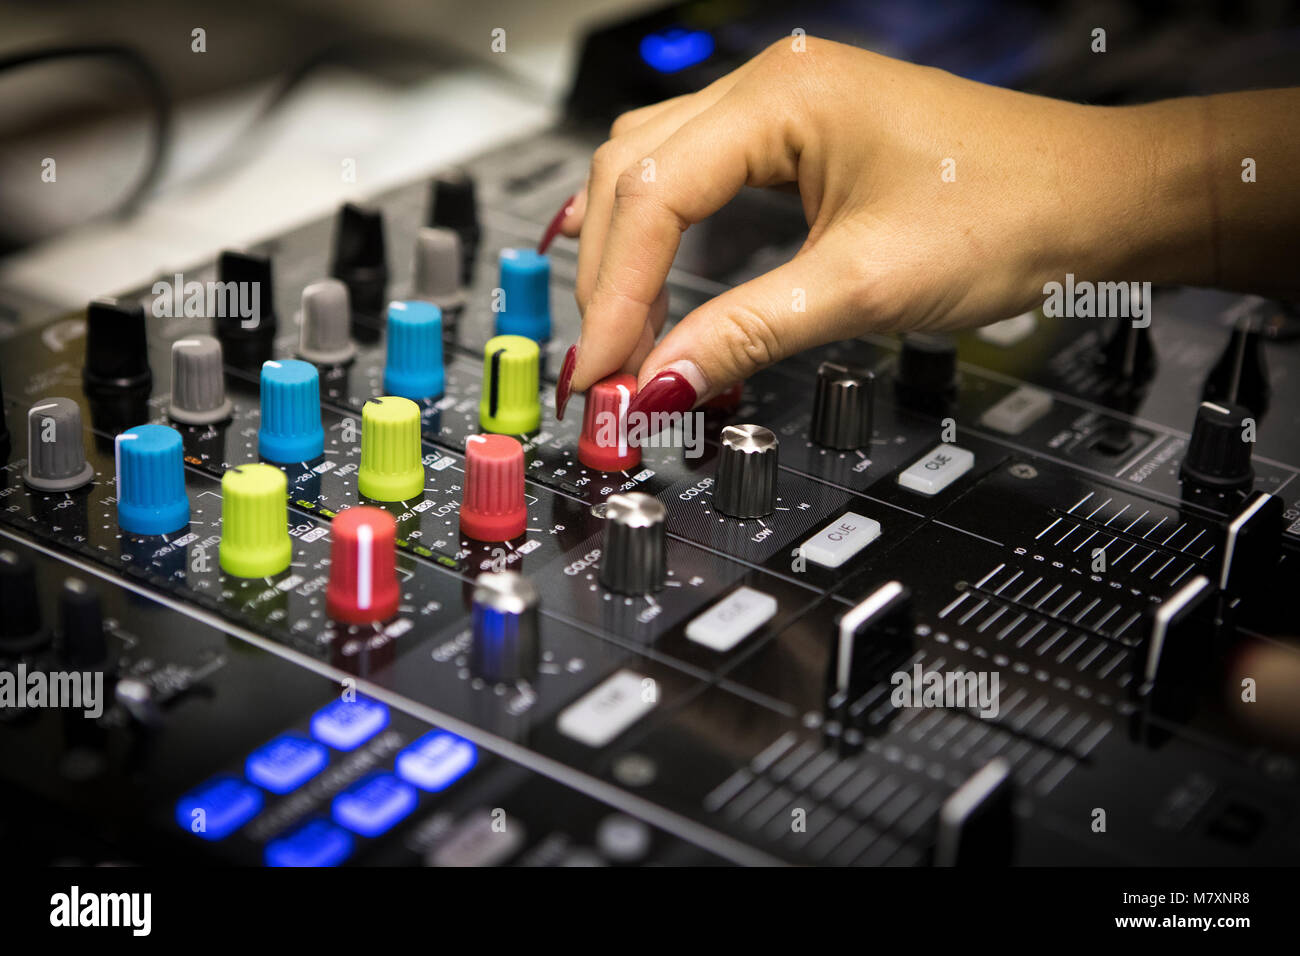 Female DJ with red fingernails on CDJ's and mixer. - Stock Image